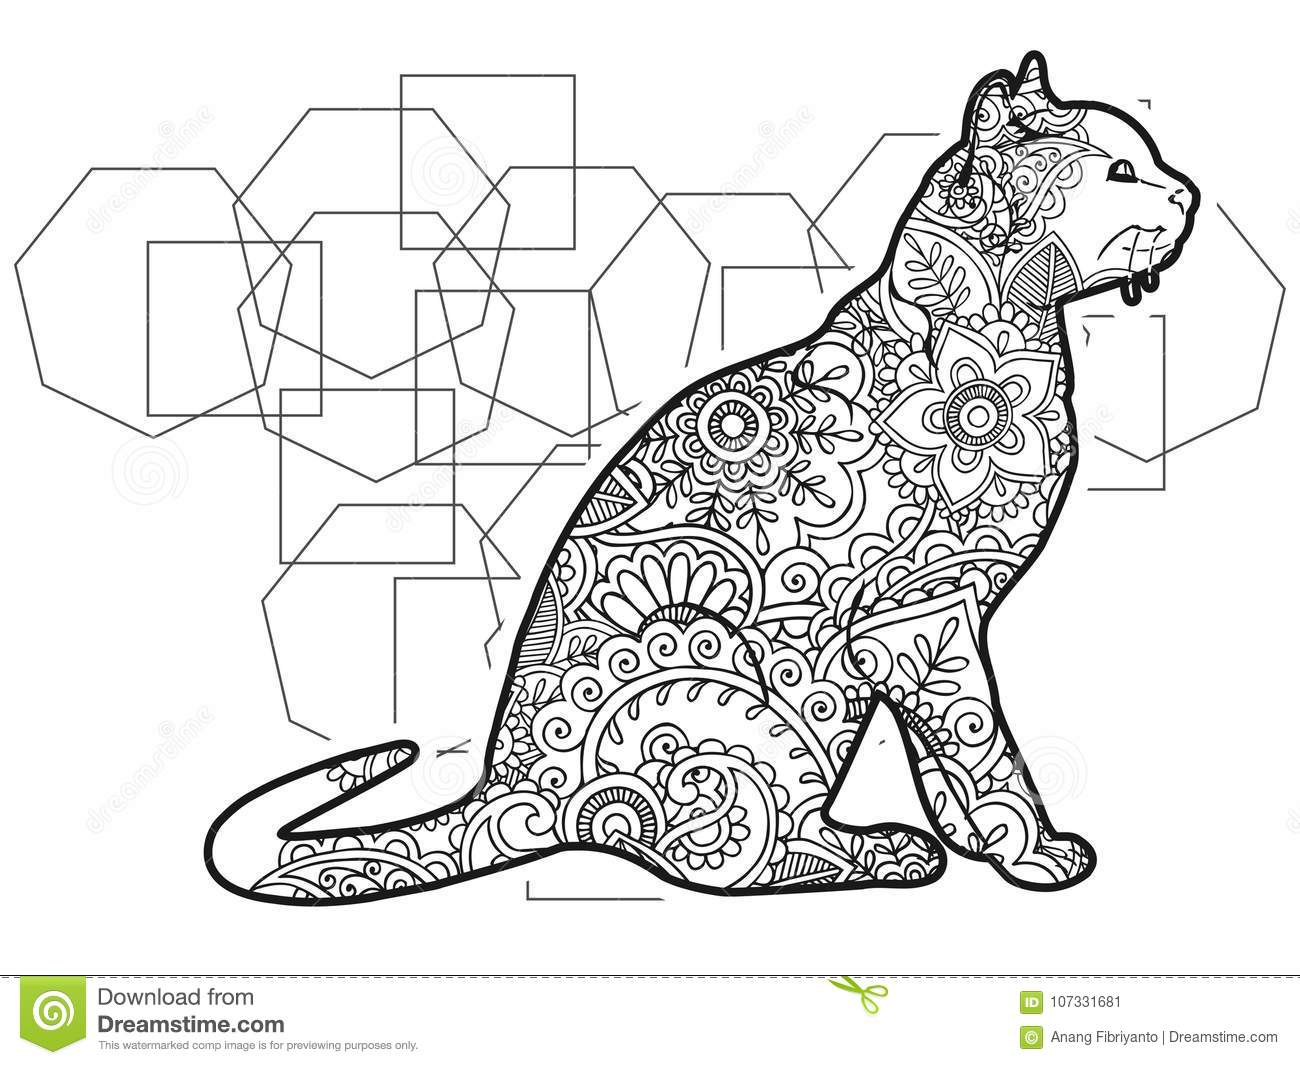 black and white hand drawn cat doodle animal paisley adult stress release coloring page. Black Bedroom Furniture Sets. Home Design Ideas